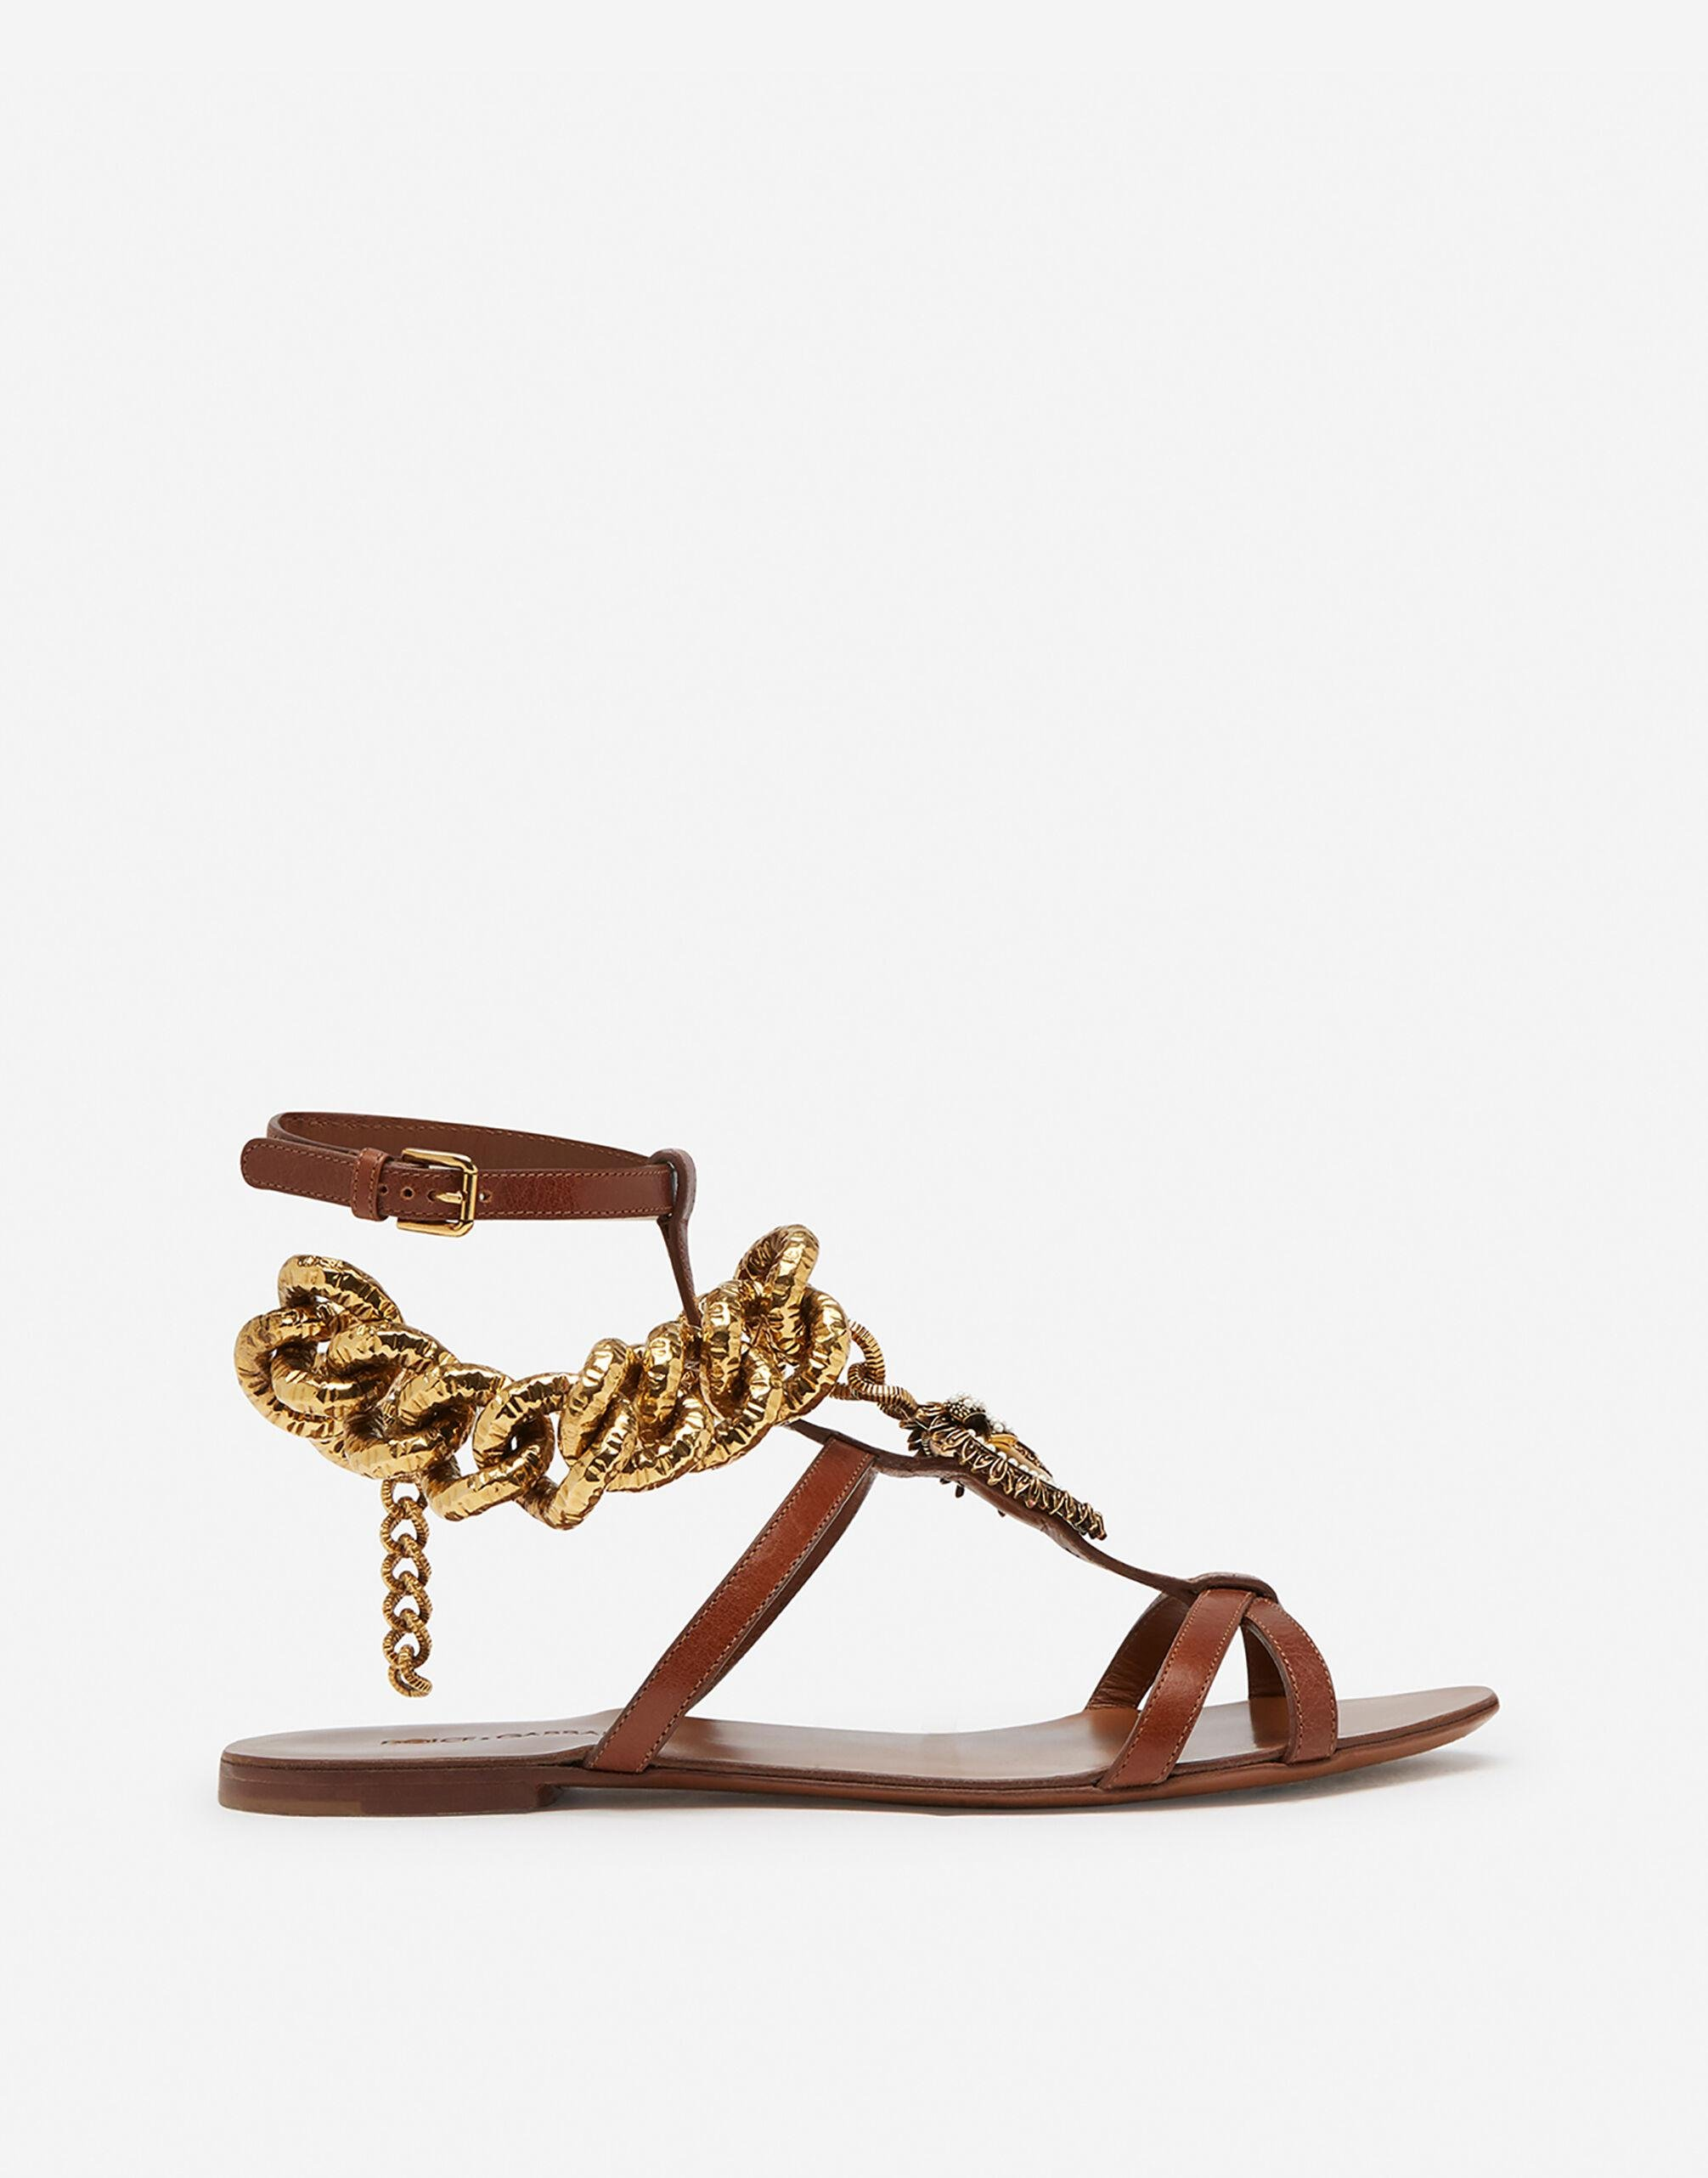 Devotion sandals in polished cowhide